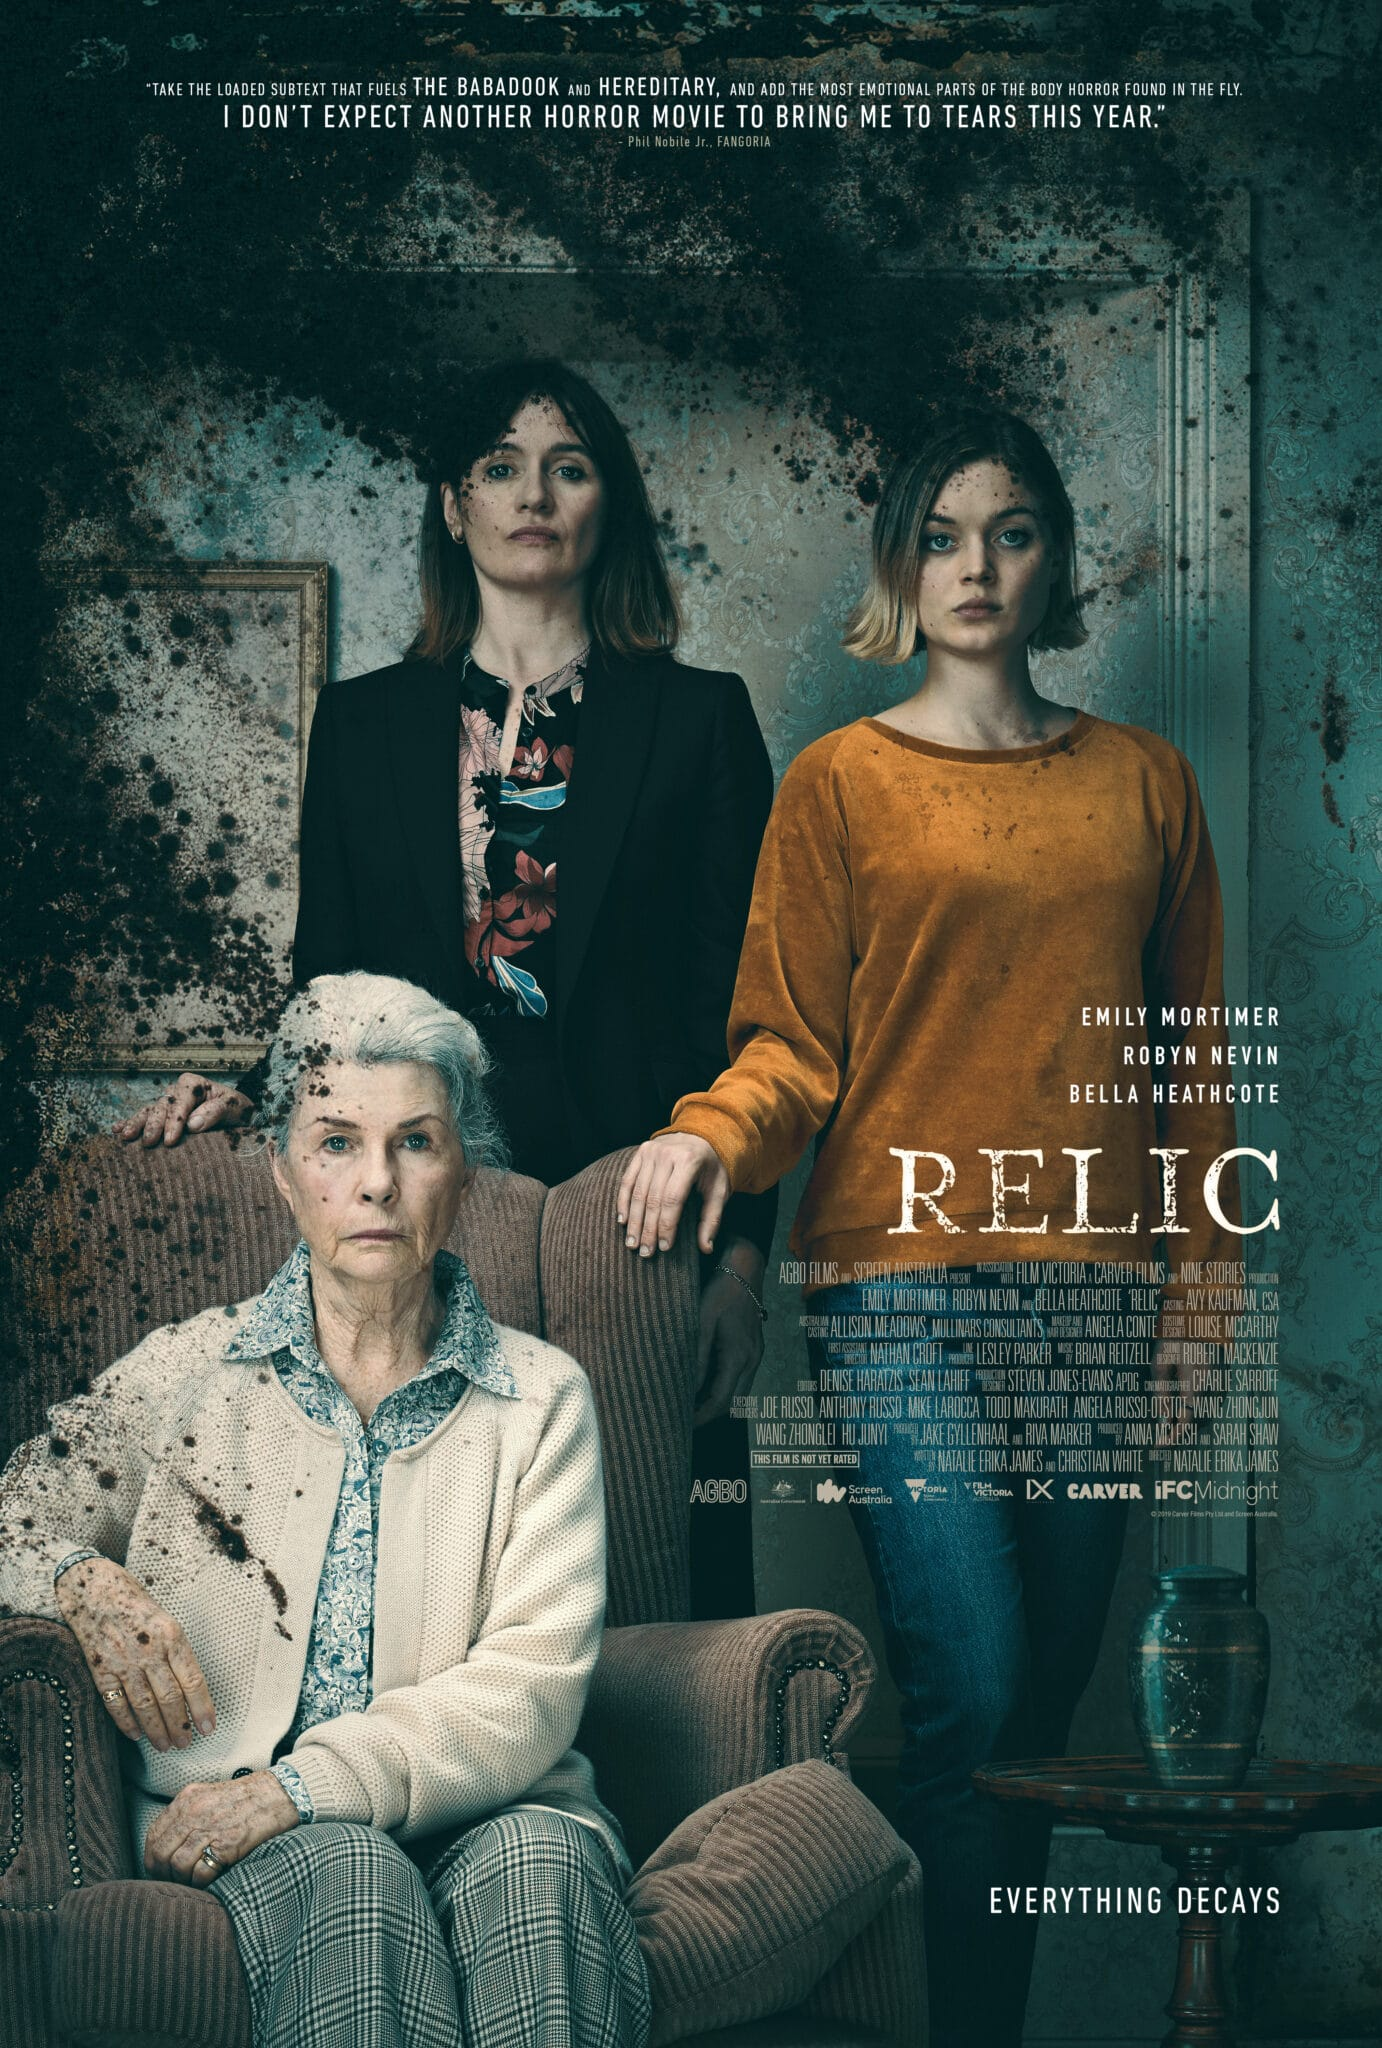 [Review] RELIC Runs Generational Horror Through A Beautiful and Unsettling Vicious Cycle